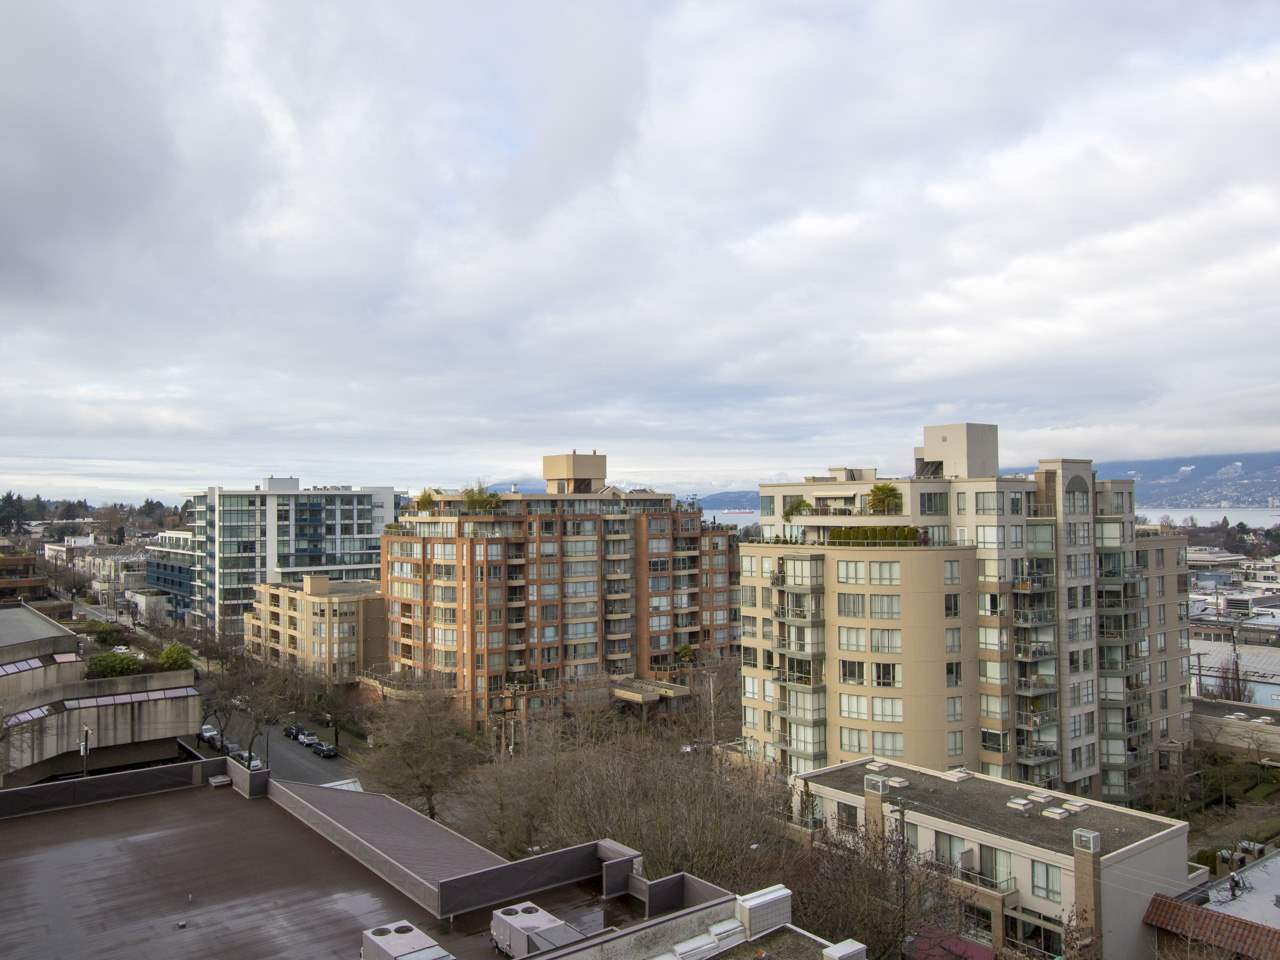 Photo 6: 1002 1650 W 7TH AVENUE in Vancouver: Fairview VW Condo for sale (Vancouver West)  : MLS® # R2022214